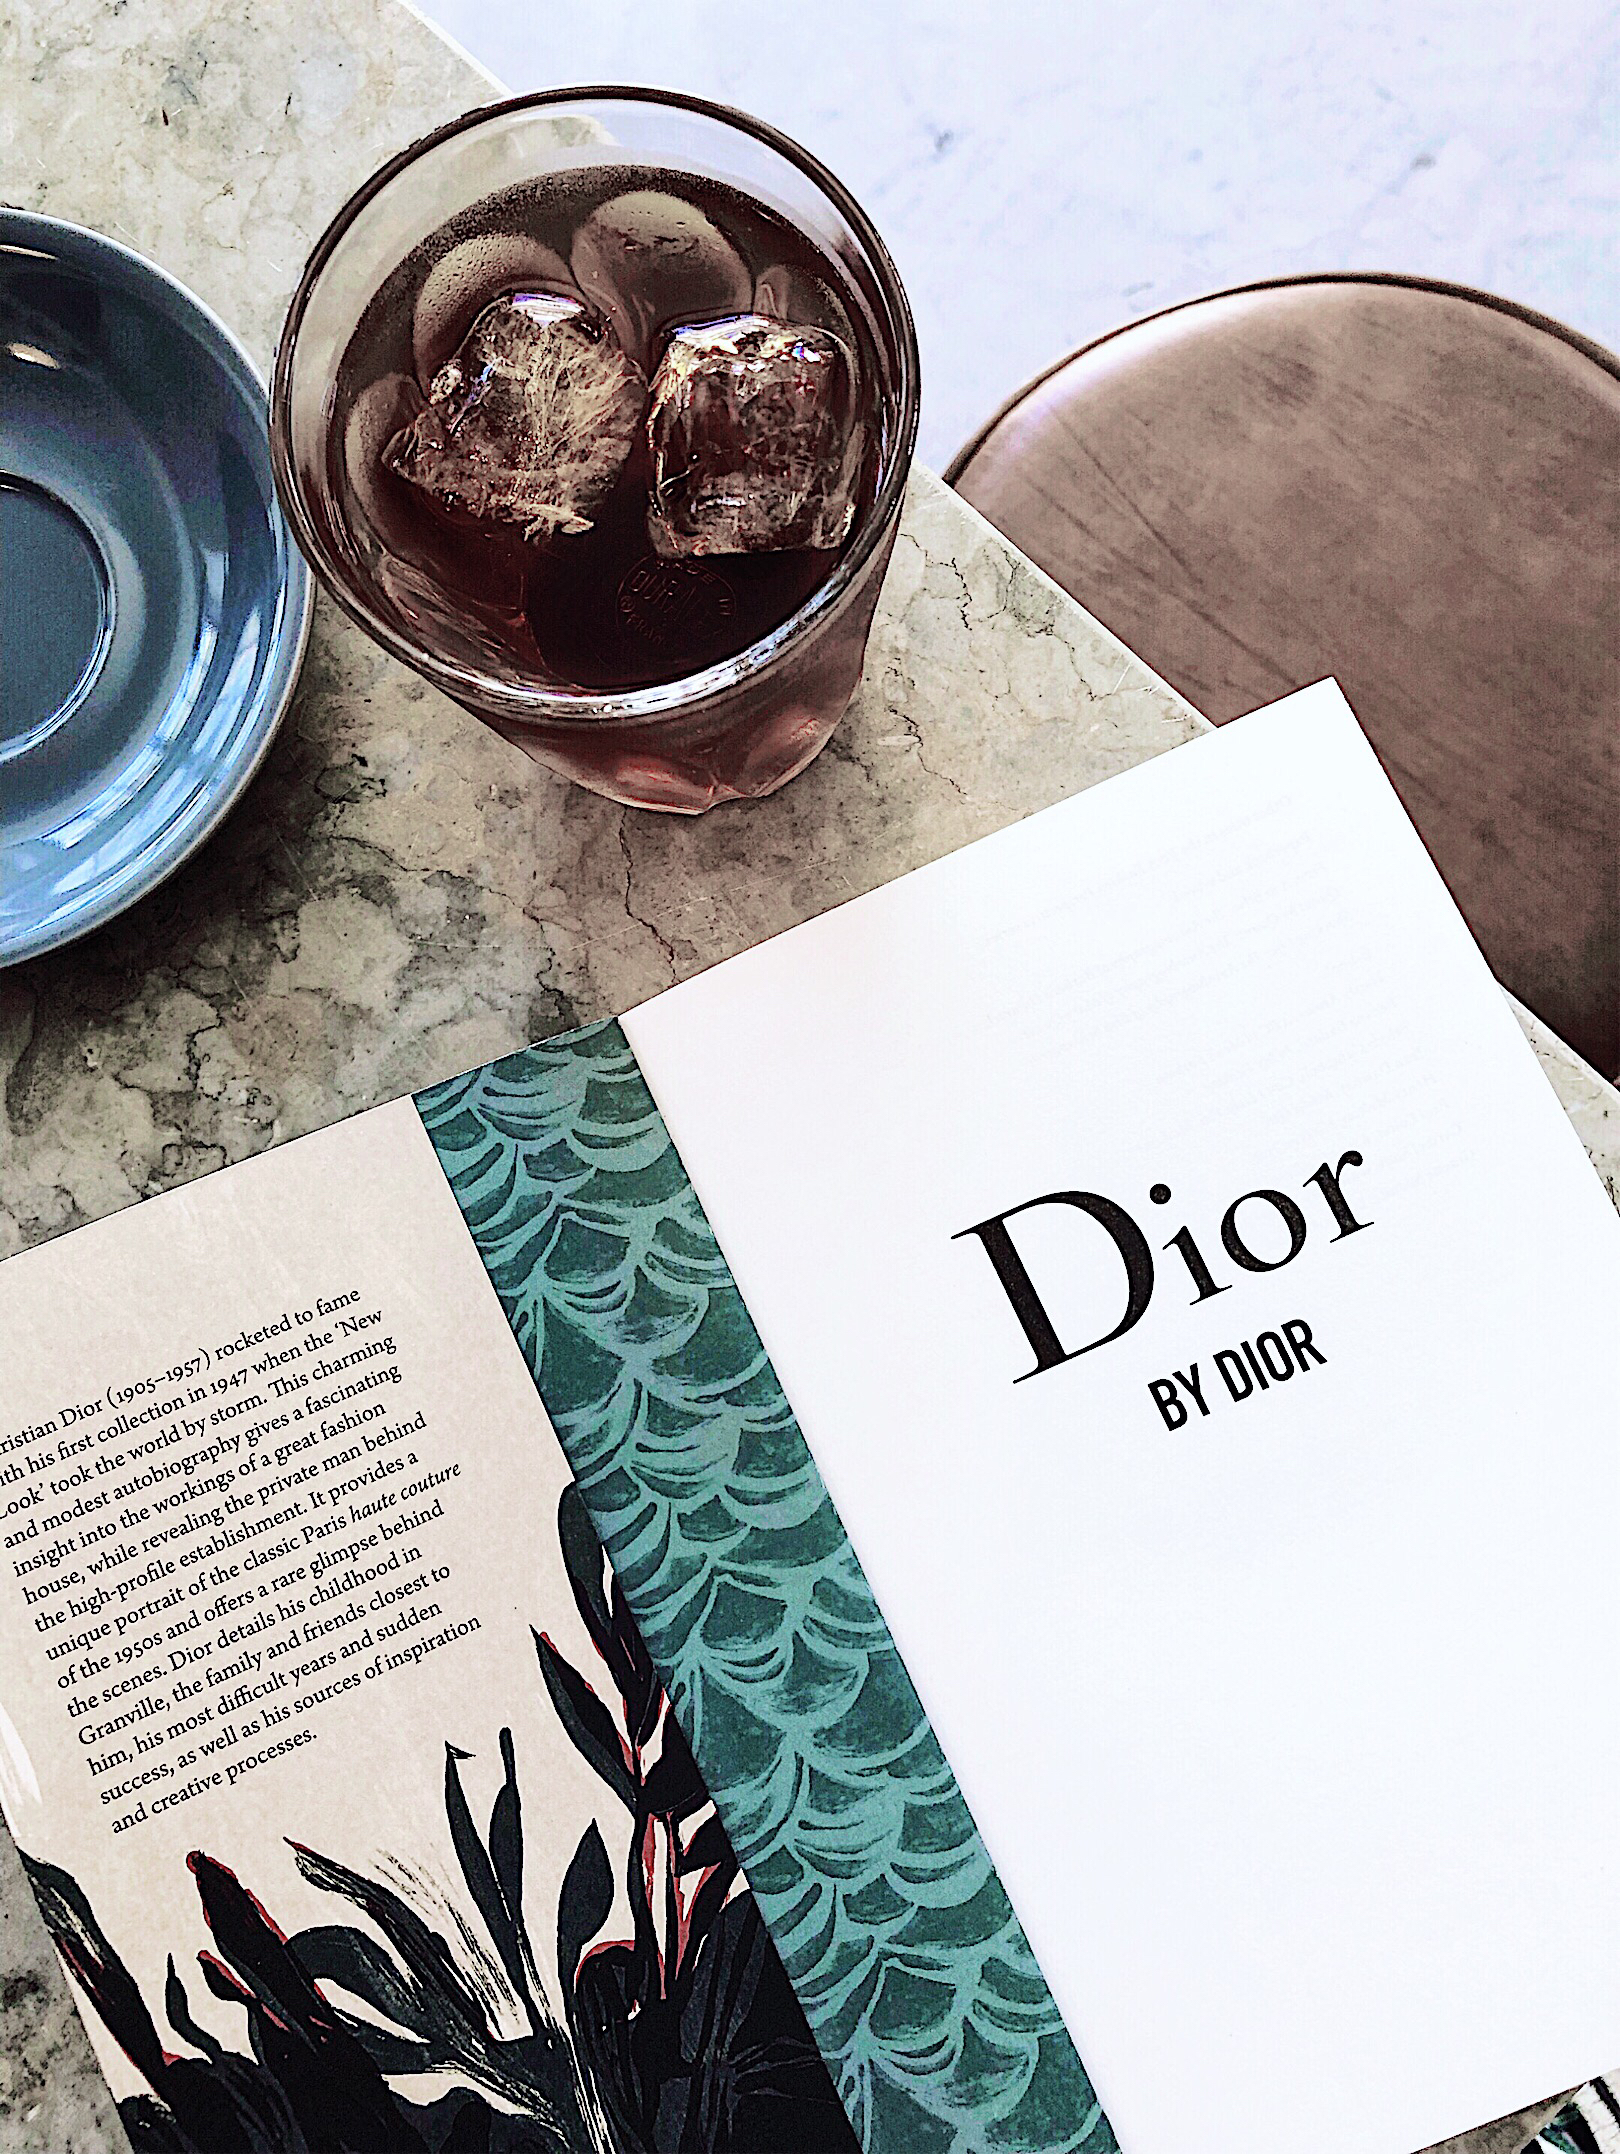 Dior by Dior book on the table